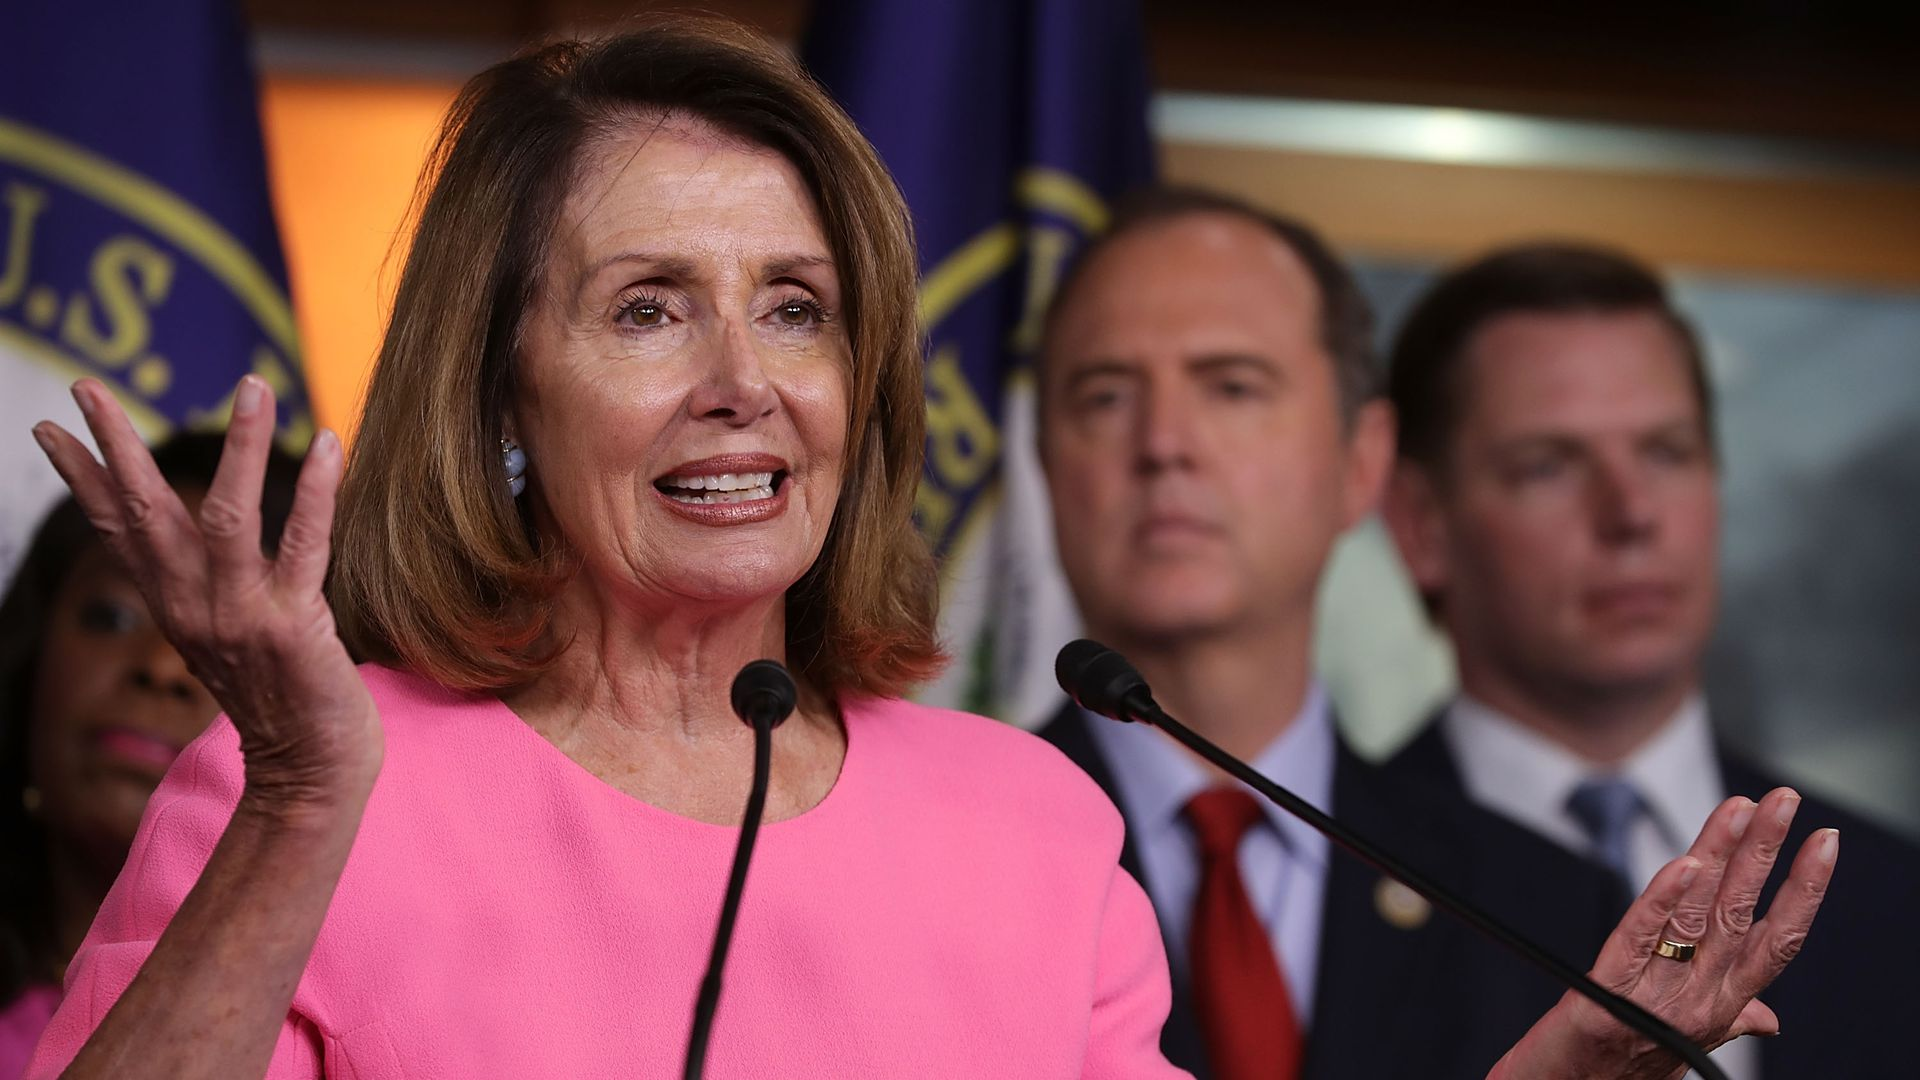 Nancy Pelosi in pink standing in front of Democrats raises her arms in a shrug smiling.